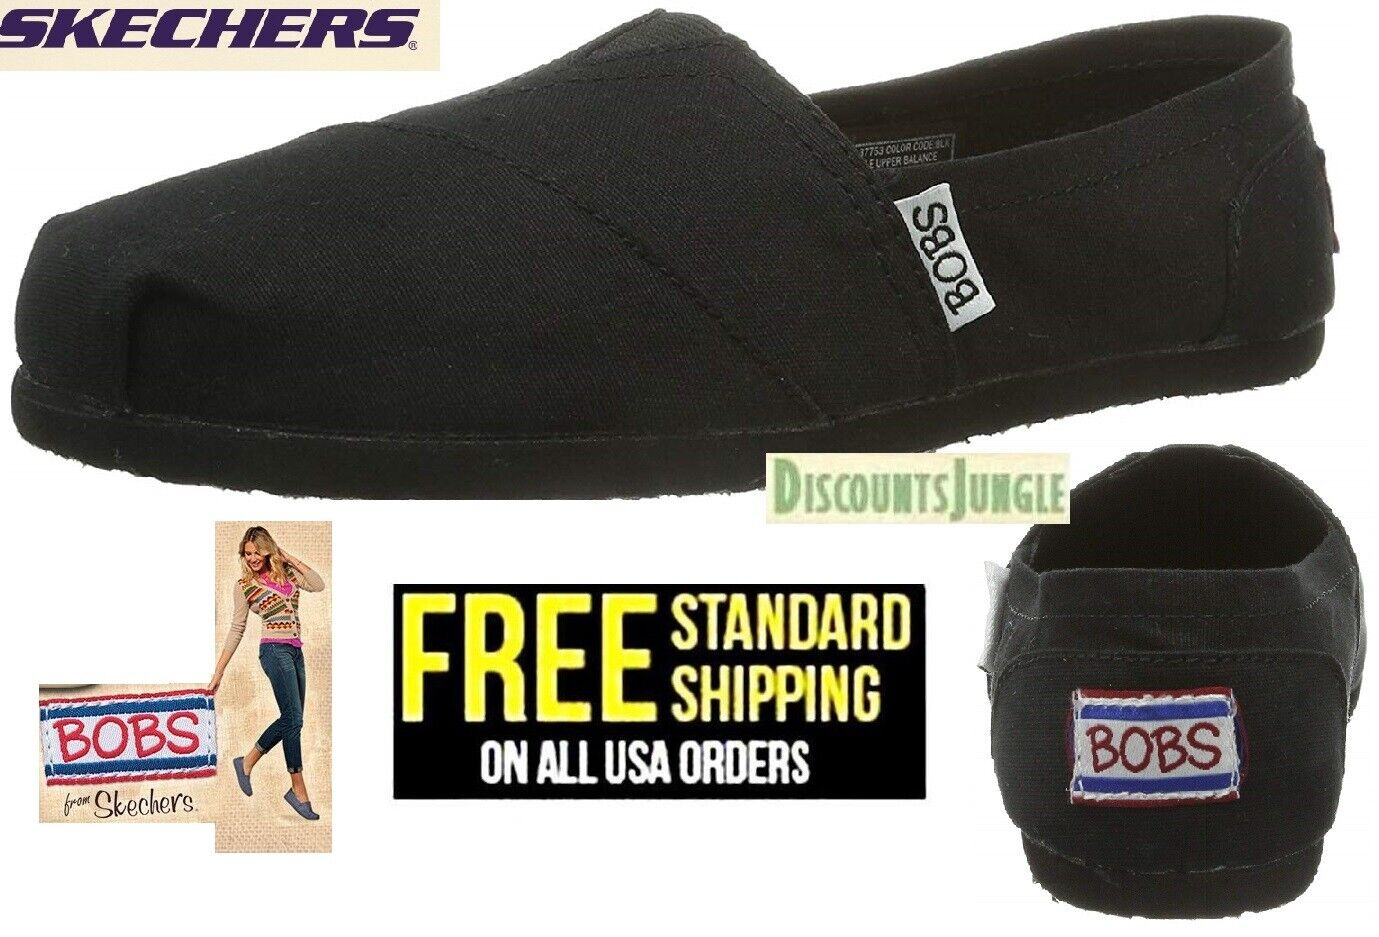 BOBS from Skechers Earth Day Slip On Flat Women's Shoes size 8 to 11 BLACK NEW